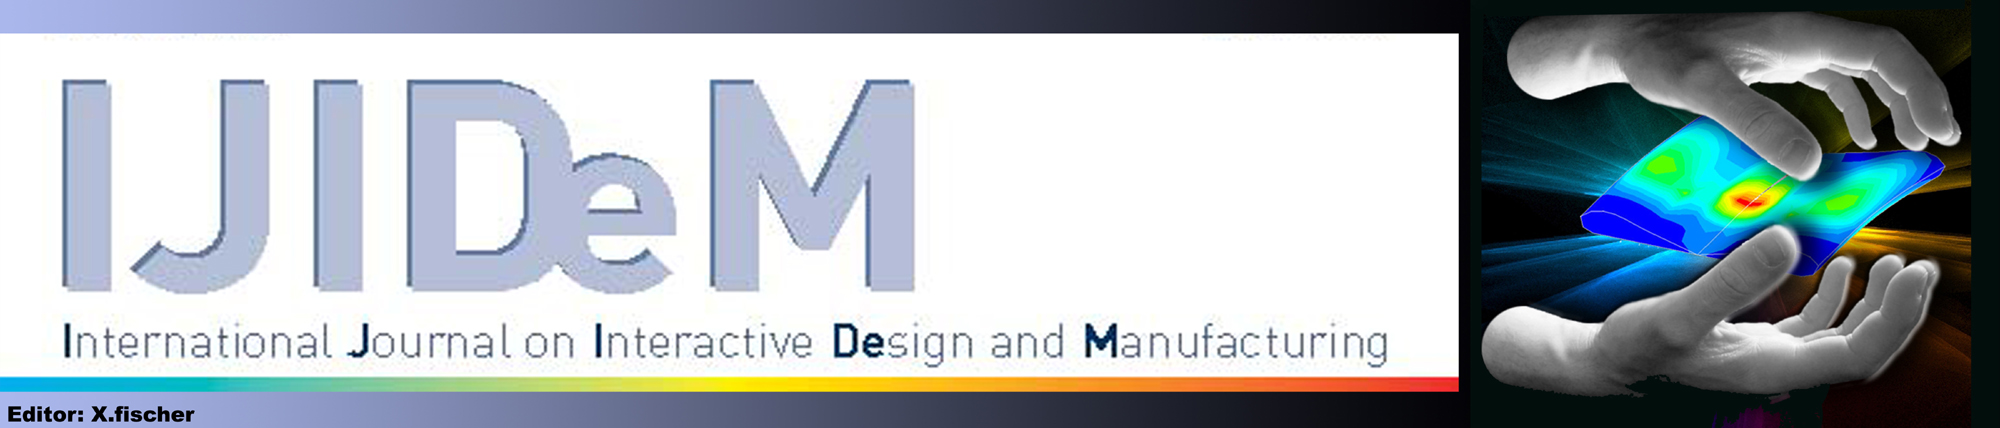 international-journal-on-interactive-design-and-manufacturing